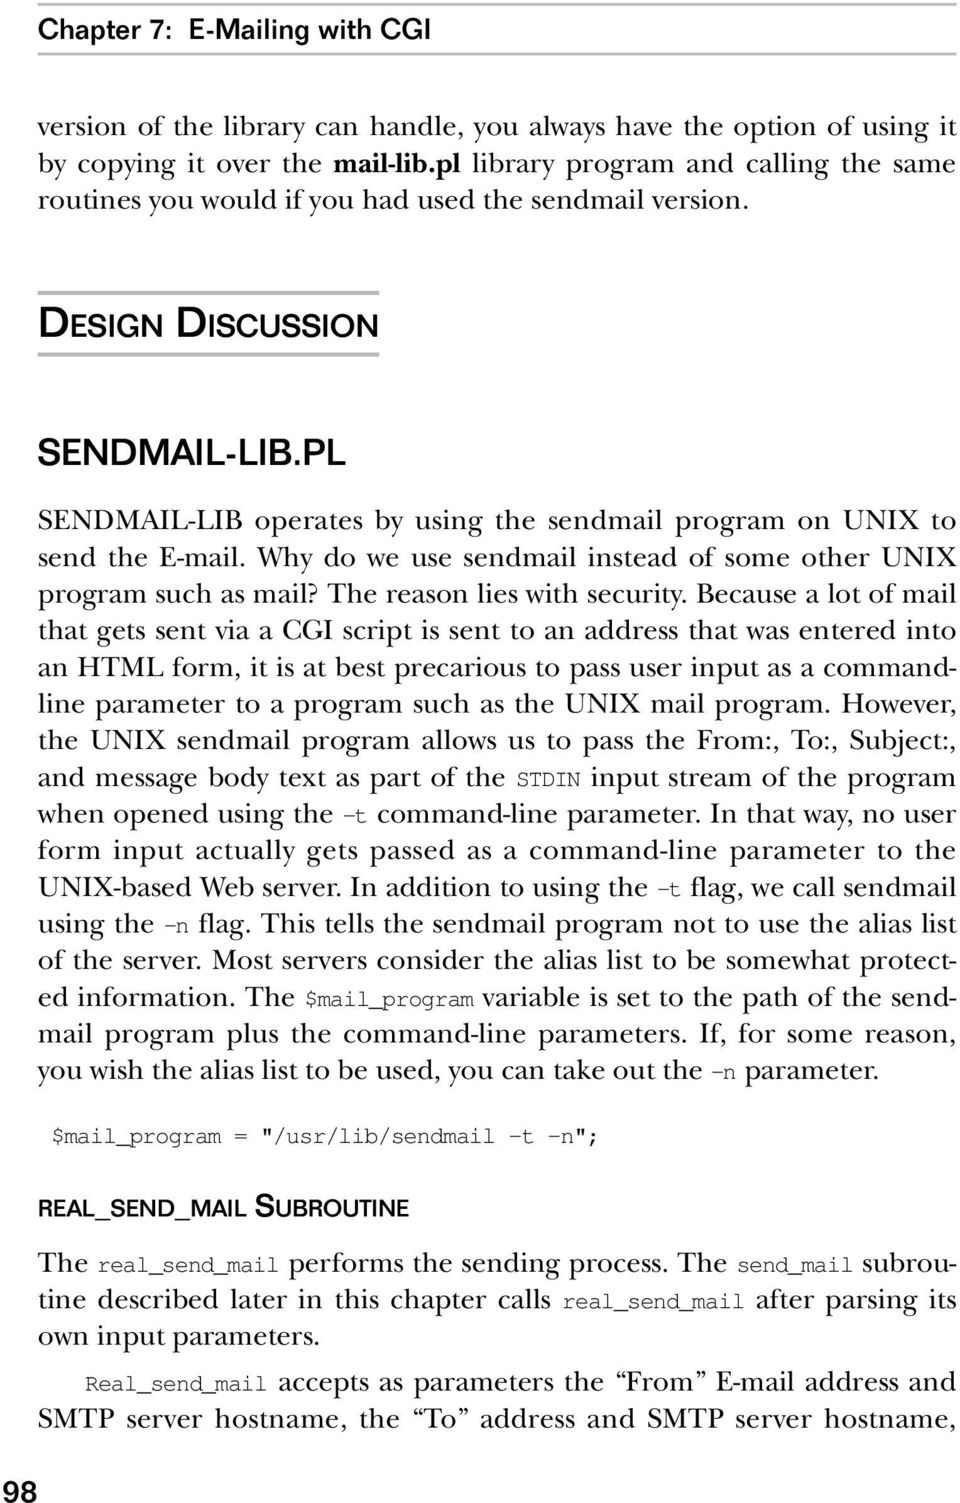 PL SENDMAIL-LIB operates by using the sendmail program on UNIX to send the E-mail. Why do we use sendmail instead of some other UNIX program such as mail? The reason lies with security.